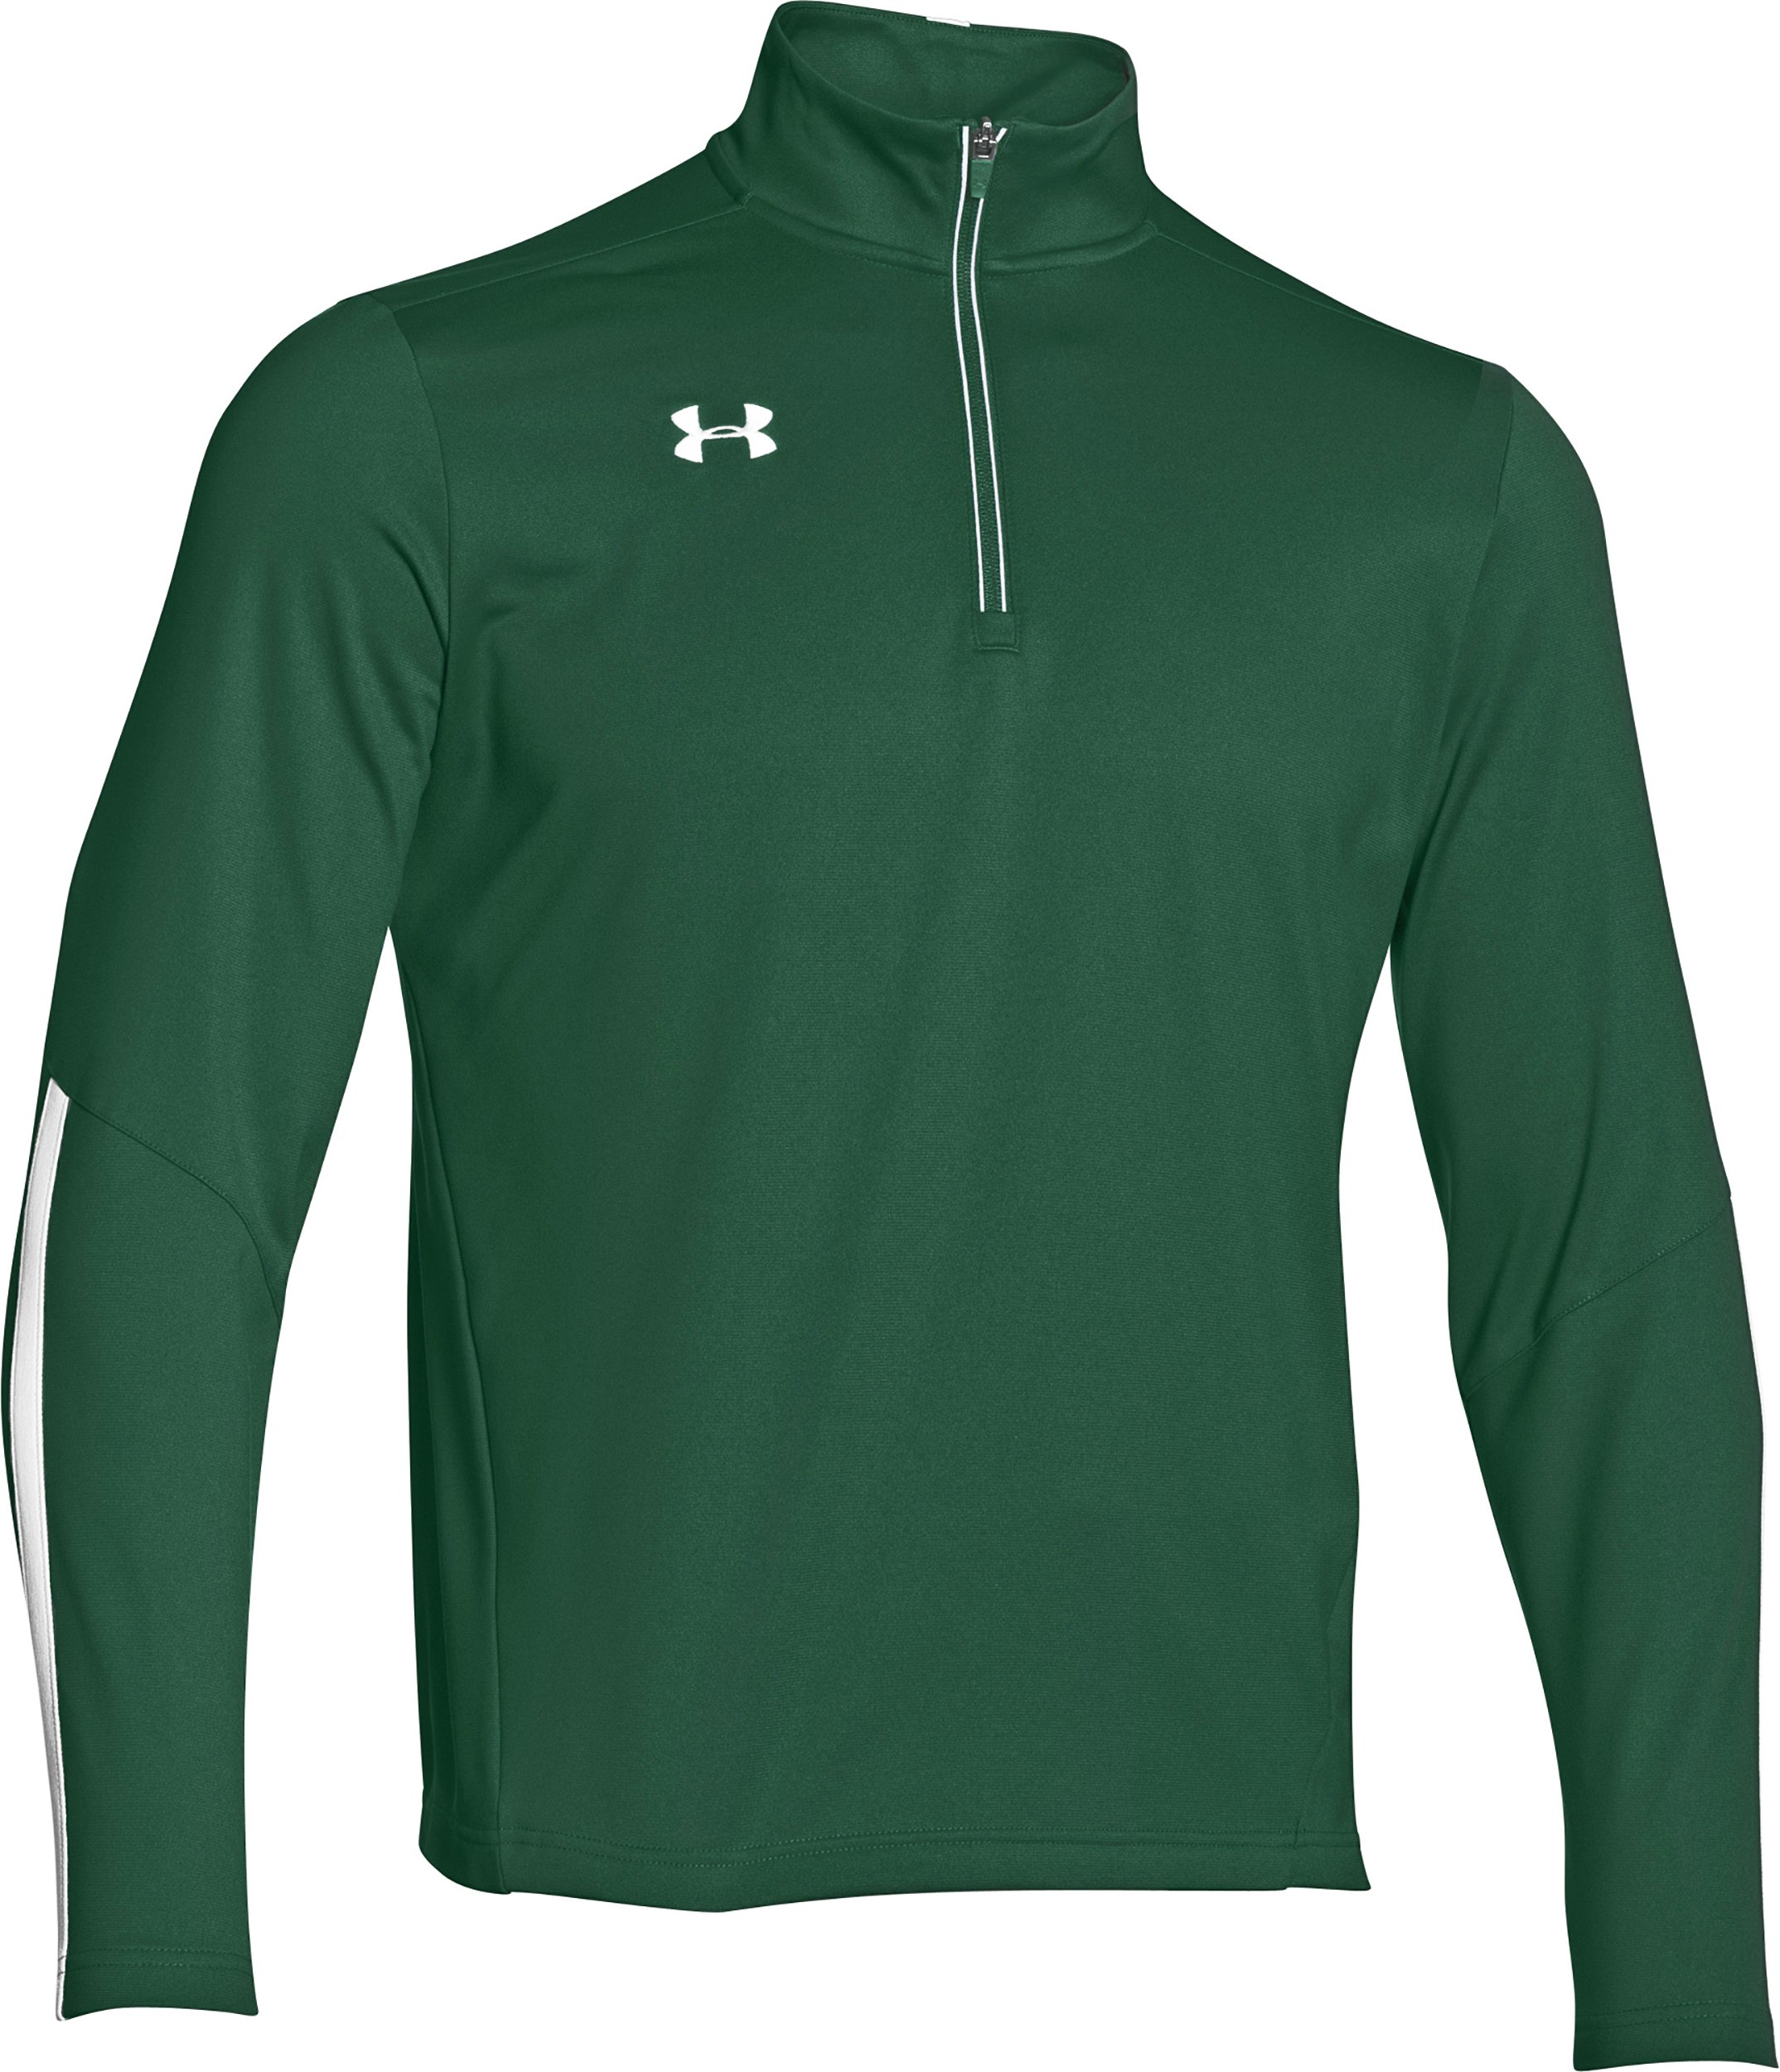 Under Armour Men's Qualifier 1/4 Zip Pullover by Under Armour